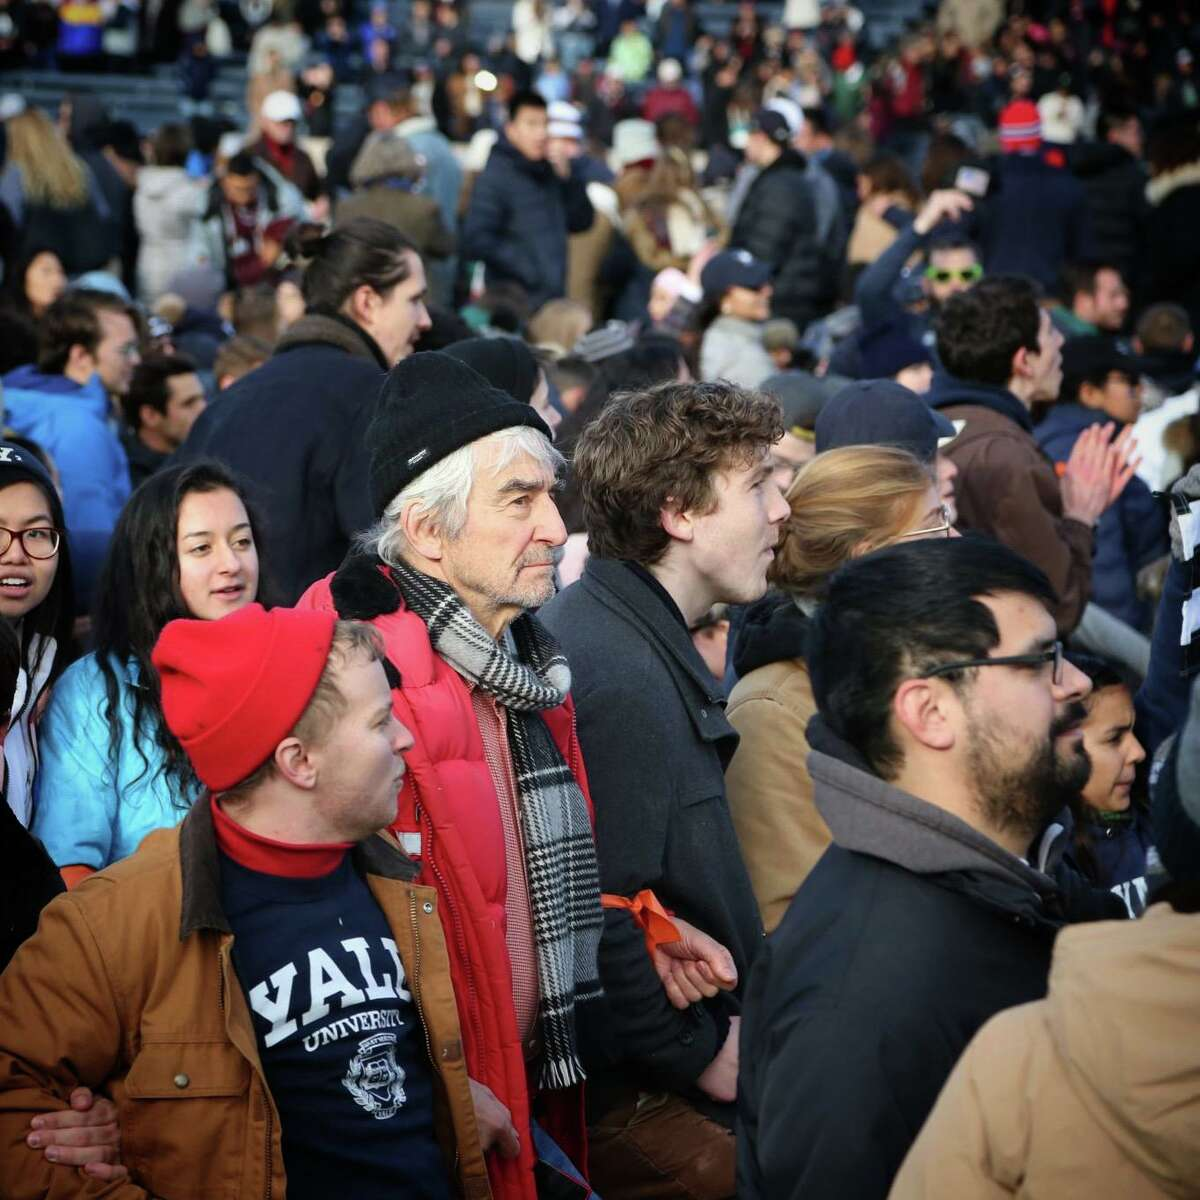 Sam Waterston, center, was among 42 people arrested at the Yale Bowl Saturday in a climate change protest over Yale's and Harvard's endowment holdings in fossil fuel companies.